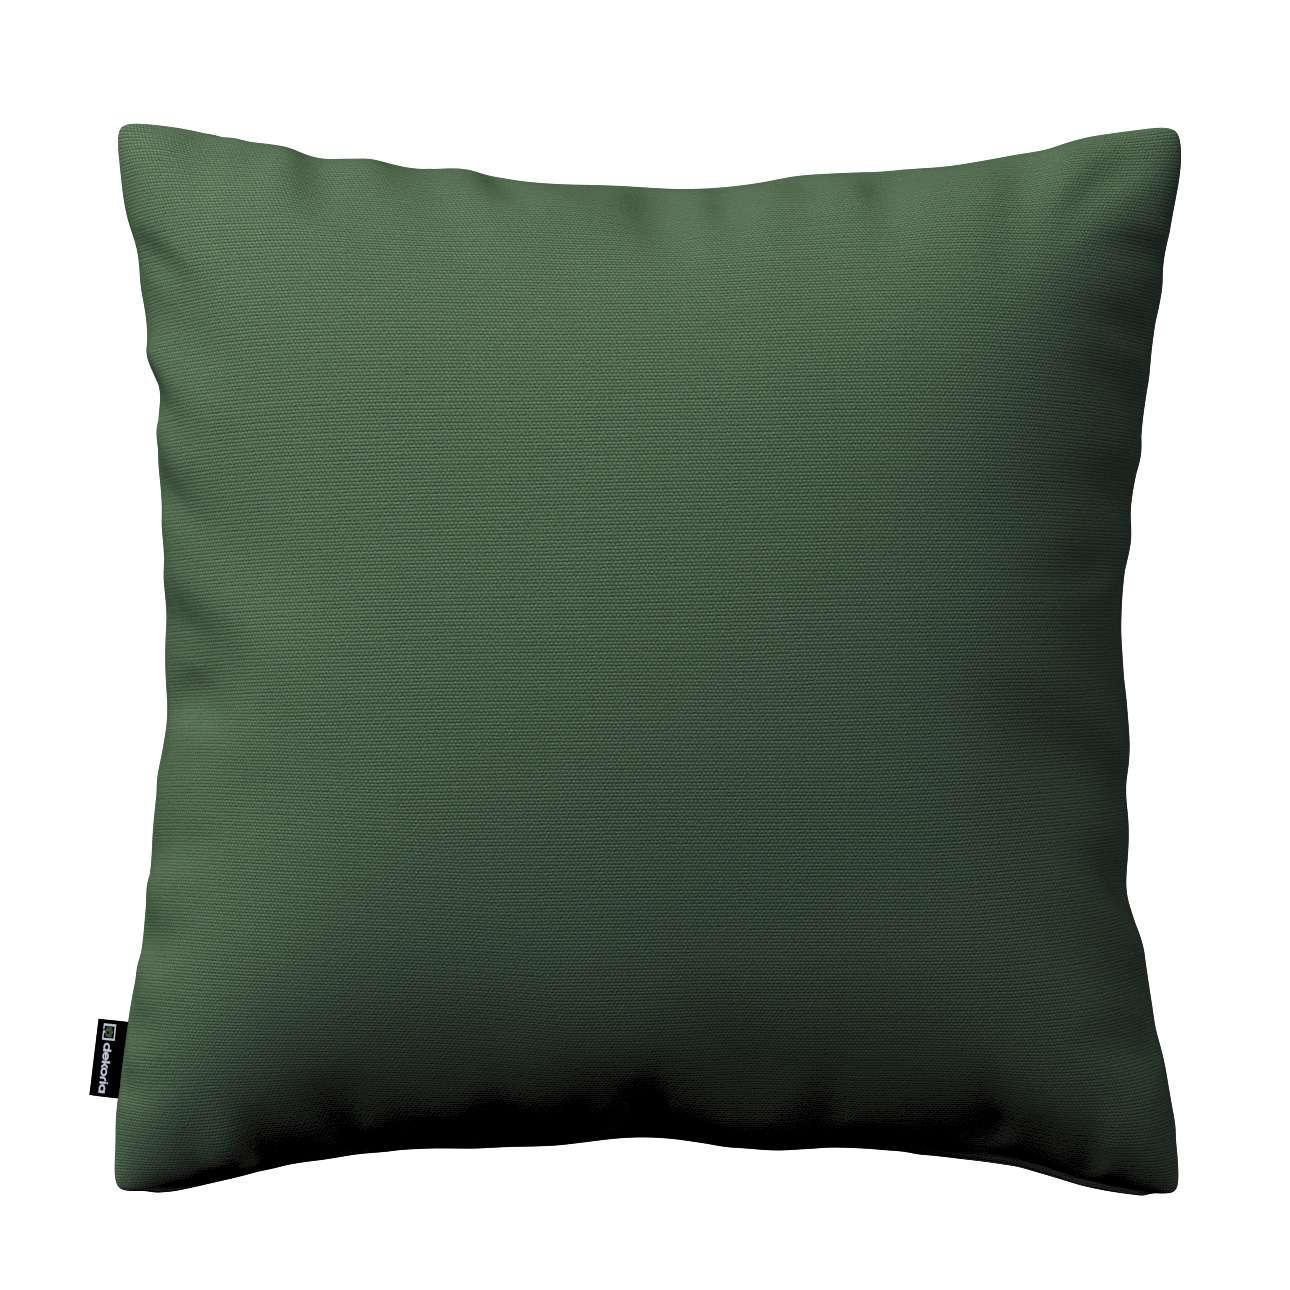 Kinga cushion cover 43 x 43 cm (17 x 17 inch) in collection Cotton Panama, fabric: 702-06